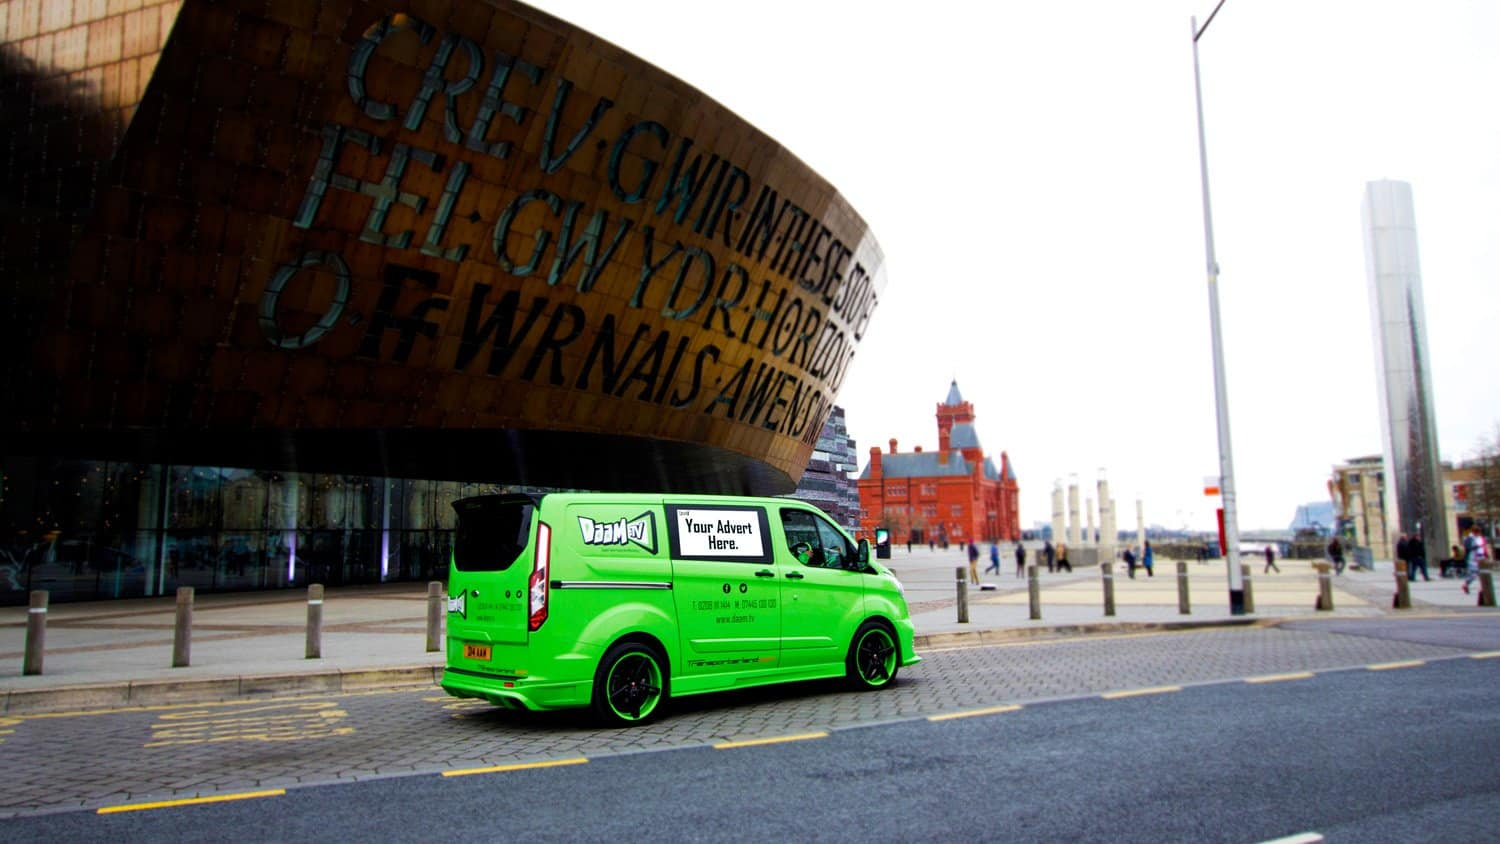 Daam TV Mobile Advertising Van Outside Wales Millenium Centre in Cardiff Bay